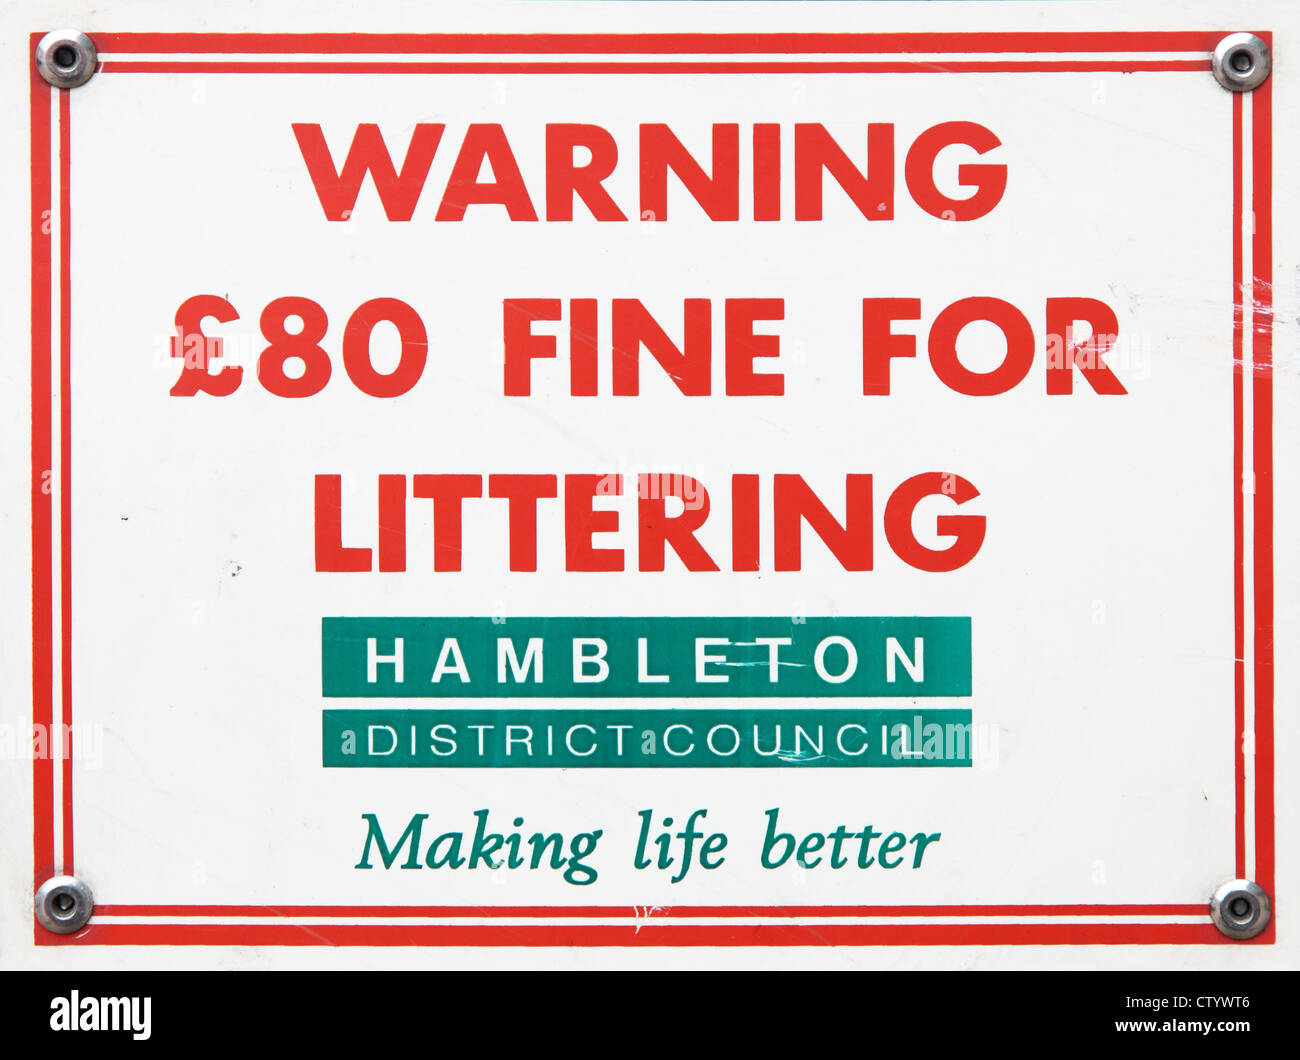 Notice warning £80 fine for littering Hambleton District Council Yorkshire England - Stock Image